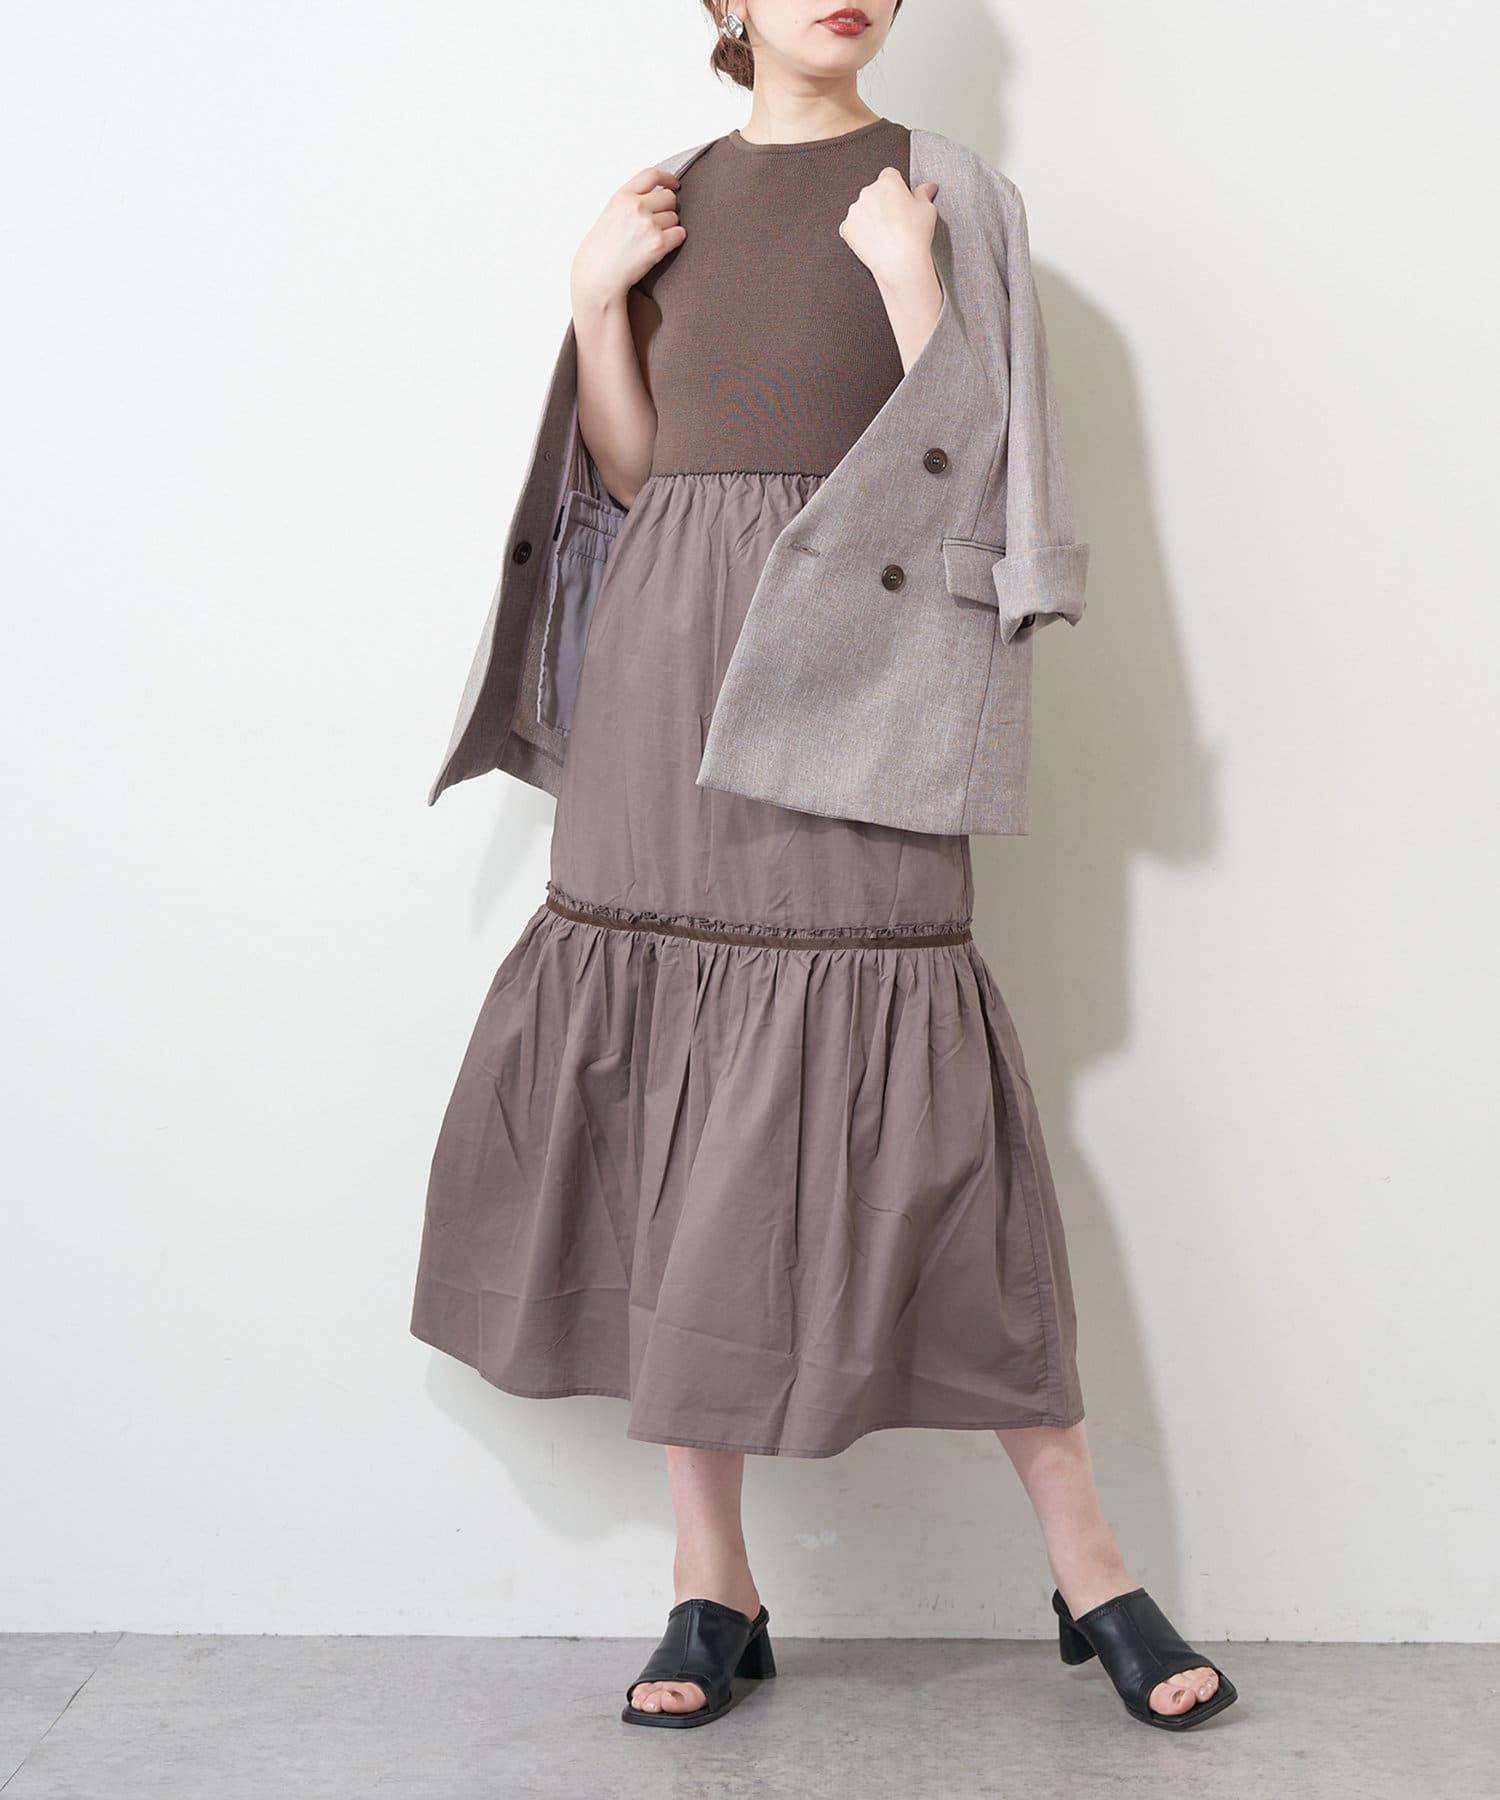 natural couture(ナチュラルクチュール) 【WEB限定】バックリボンドッキングティアードワンピース